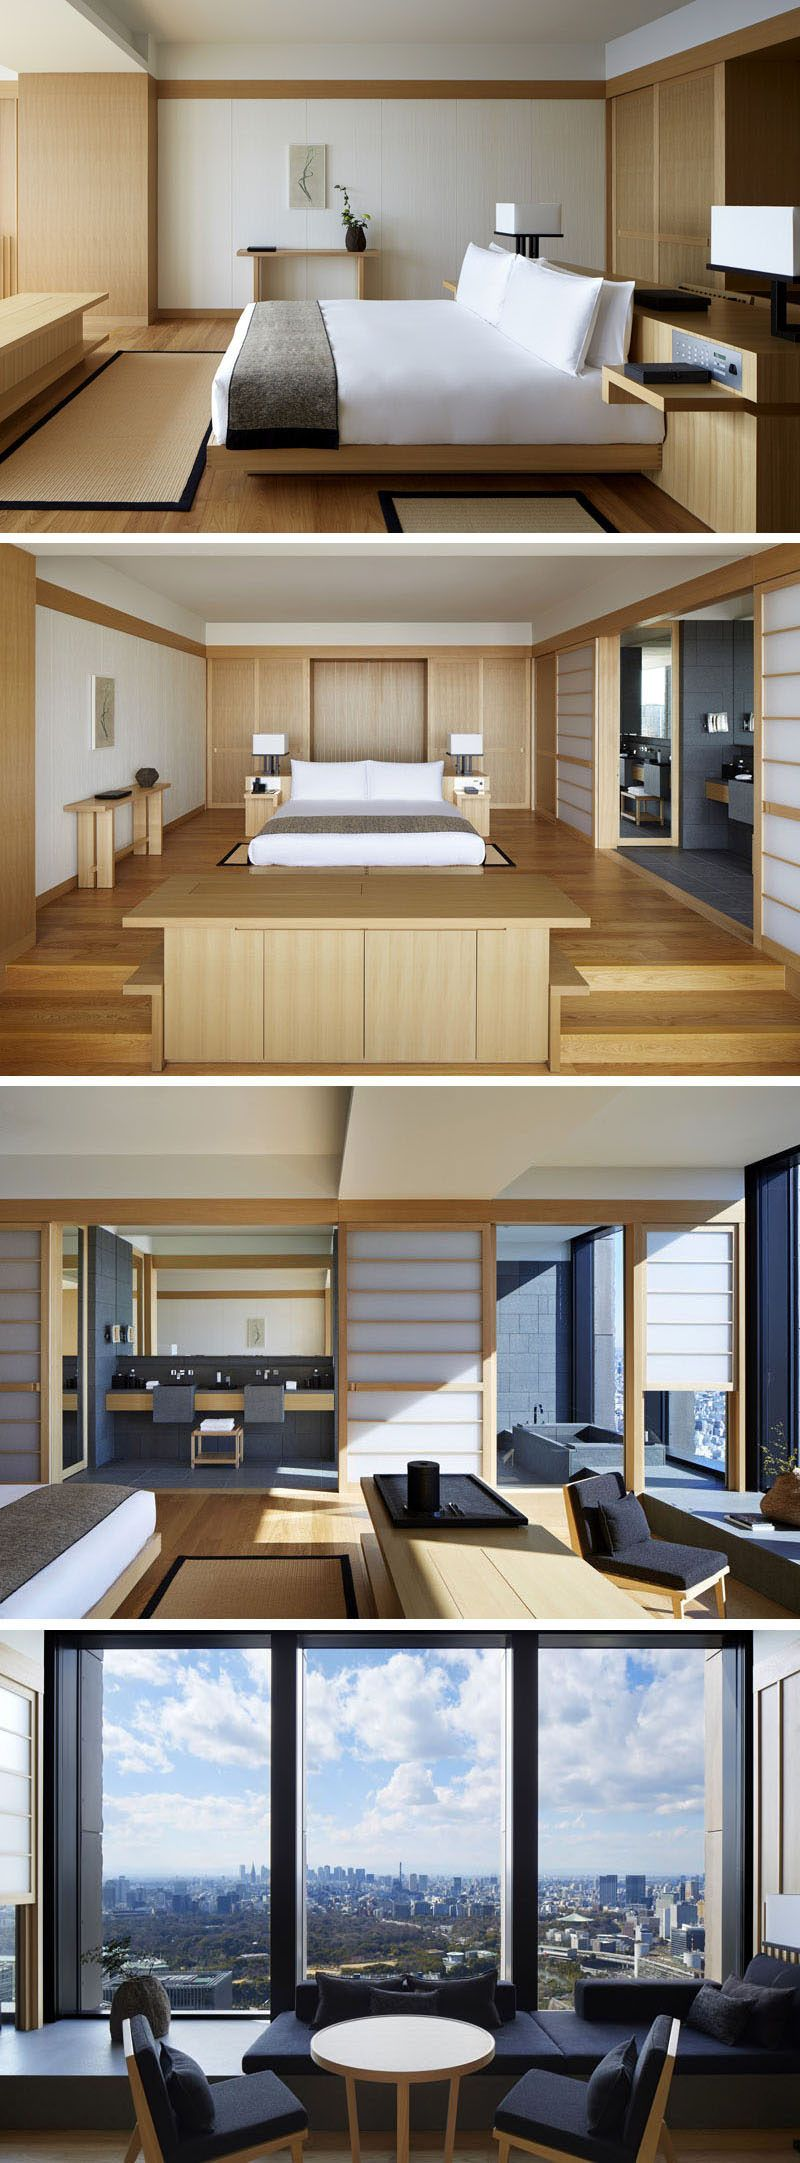 Best How To Mix Contemporary Interior Design With Elements Of 400 x 300